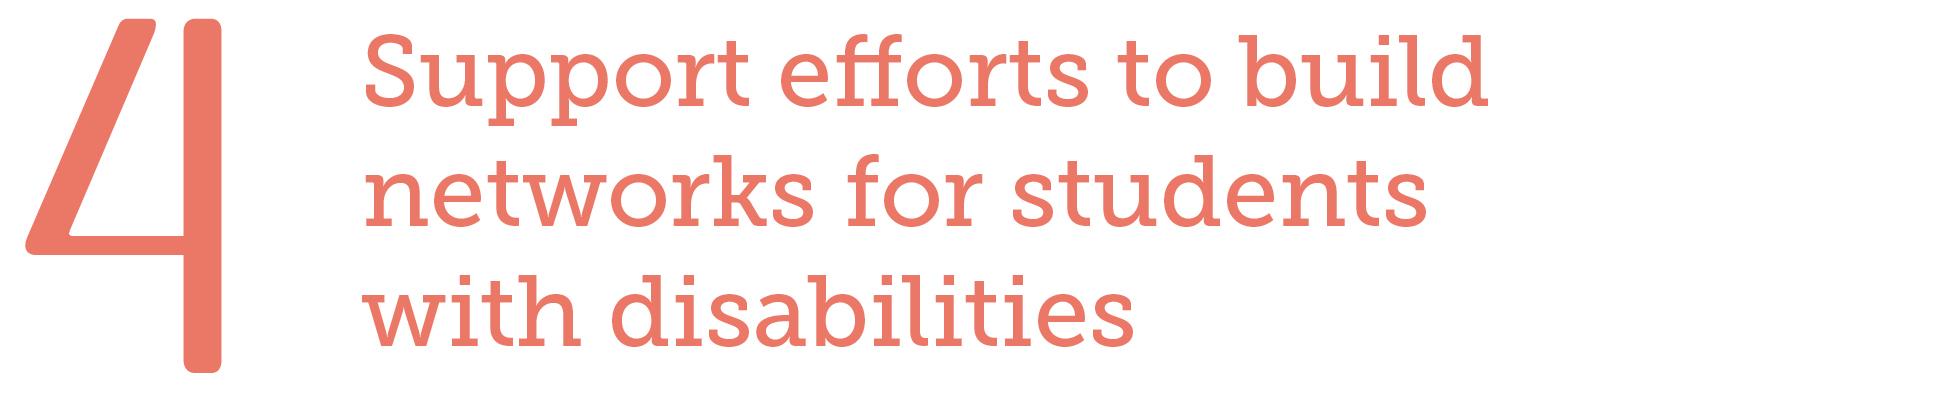 4. Support efforts to build networks for students with disabilities